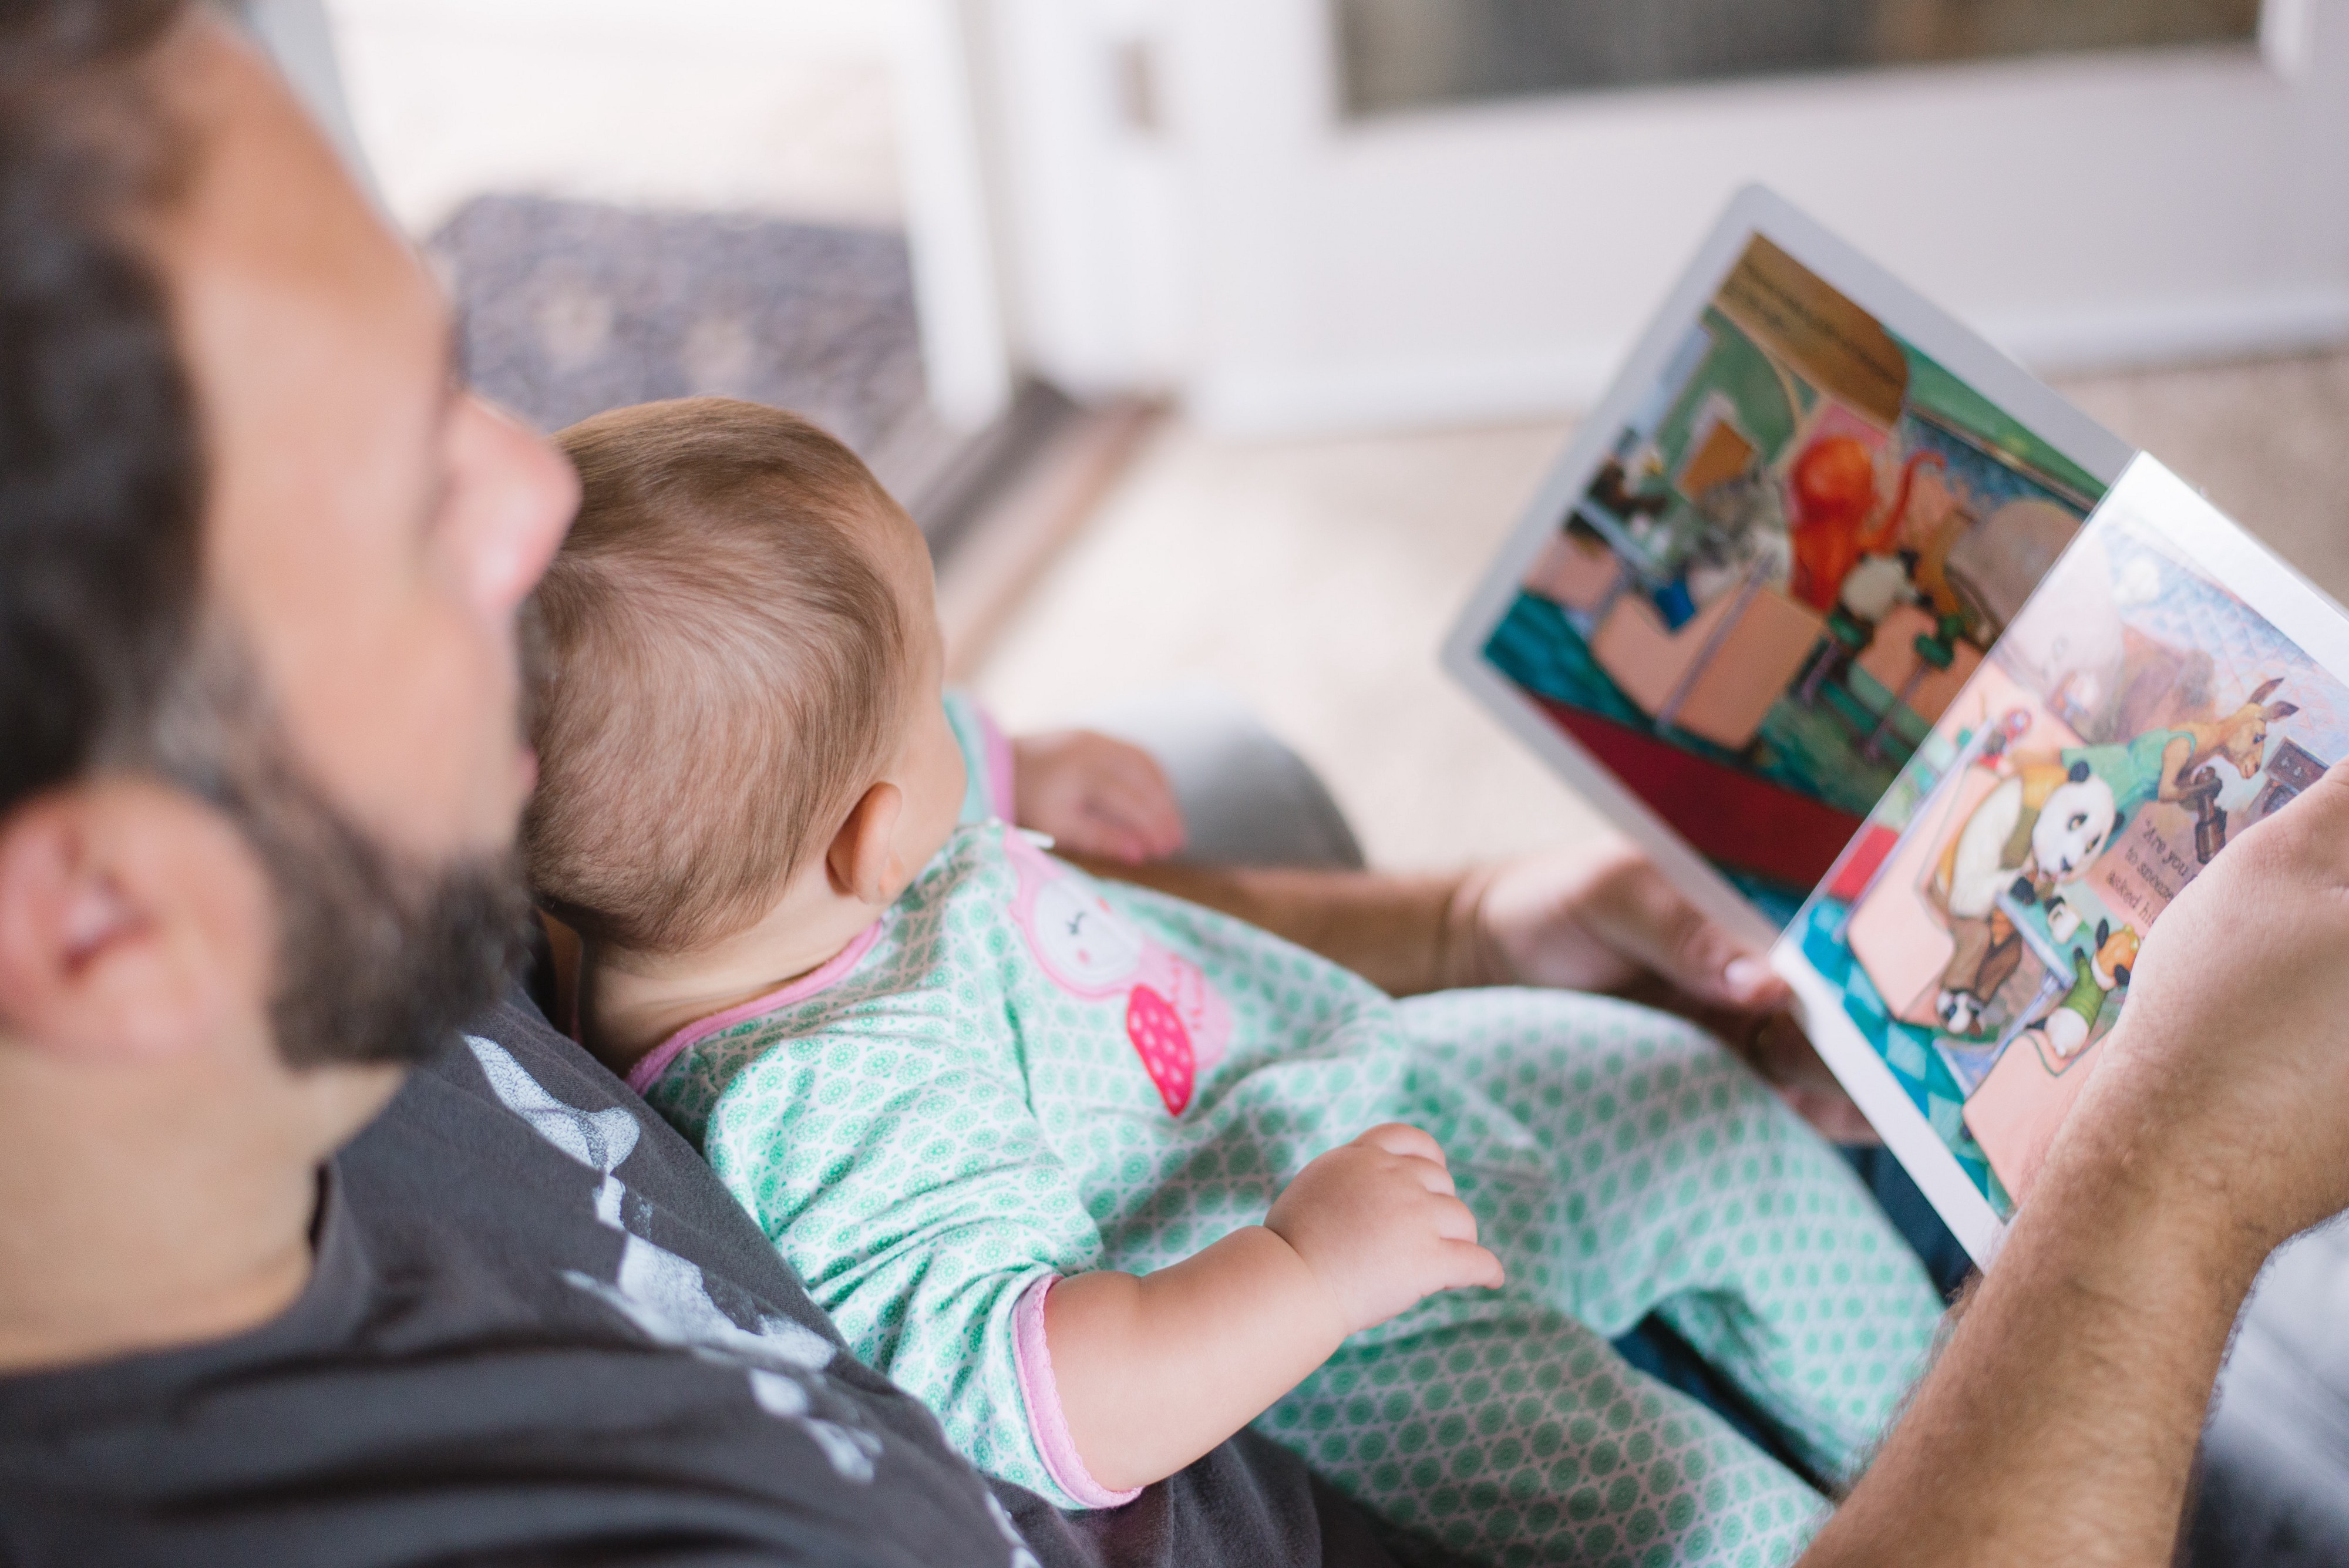 Father holding young child in lap, reading a storybook together